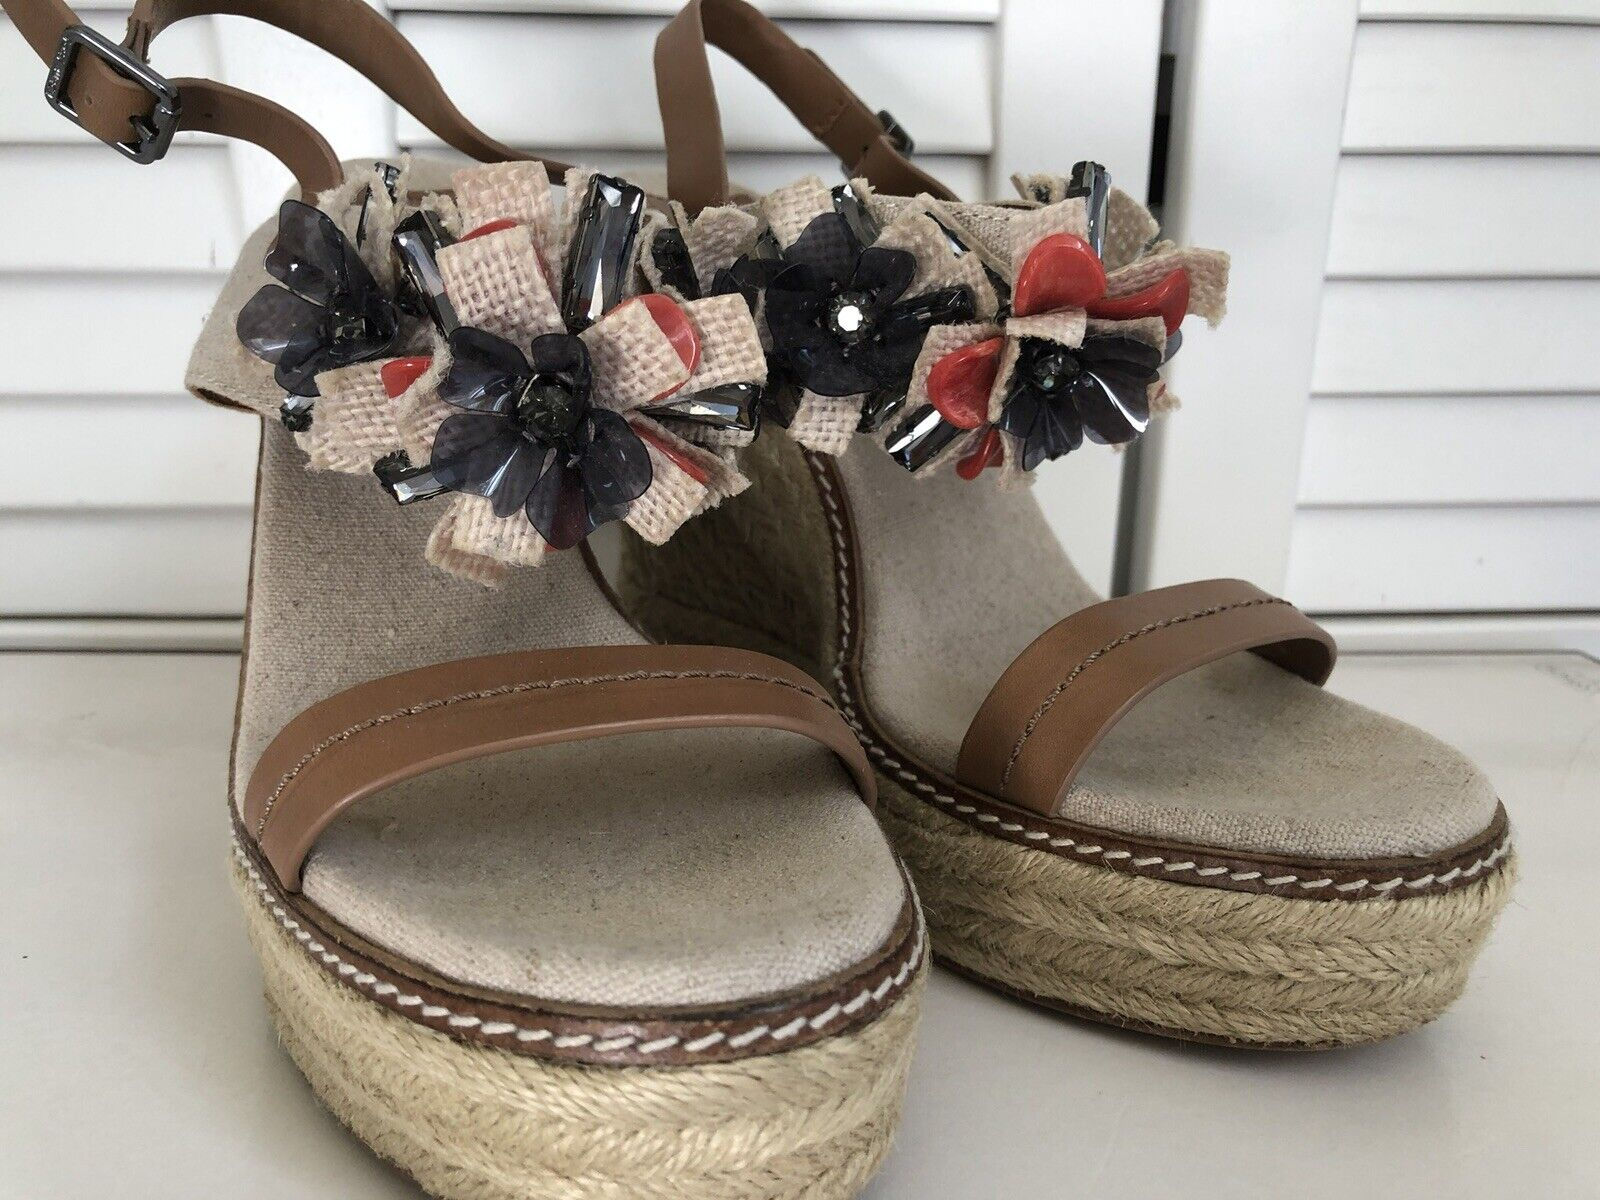 TORY BURCH MALLORY ESPADRILLE WEDGE SANDAL SHOE CRYSTALS WOMENS Sz 9M  275 NEW